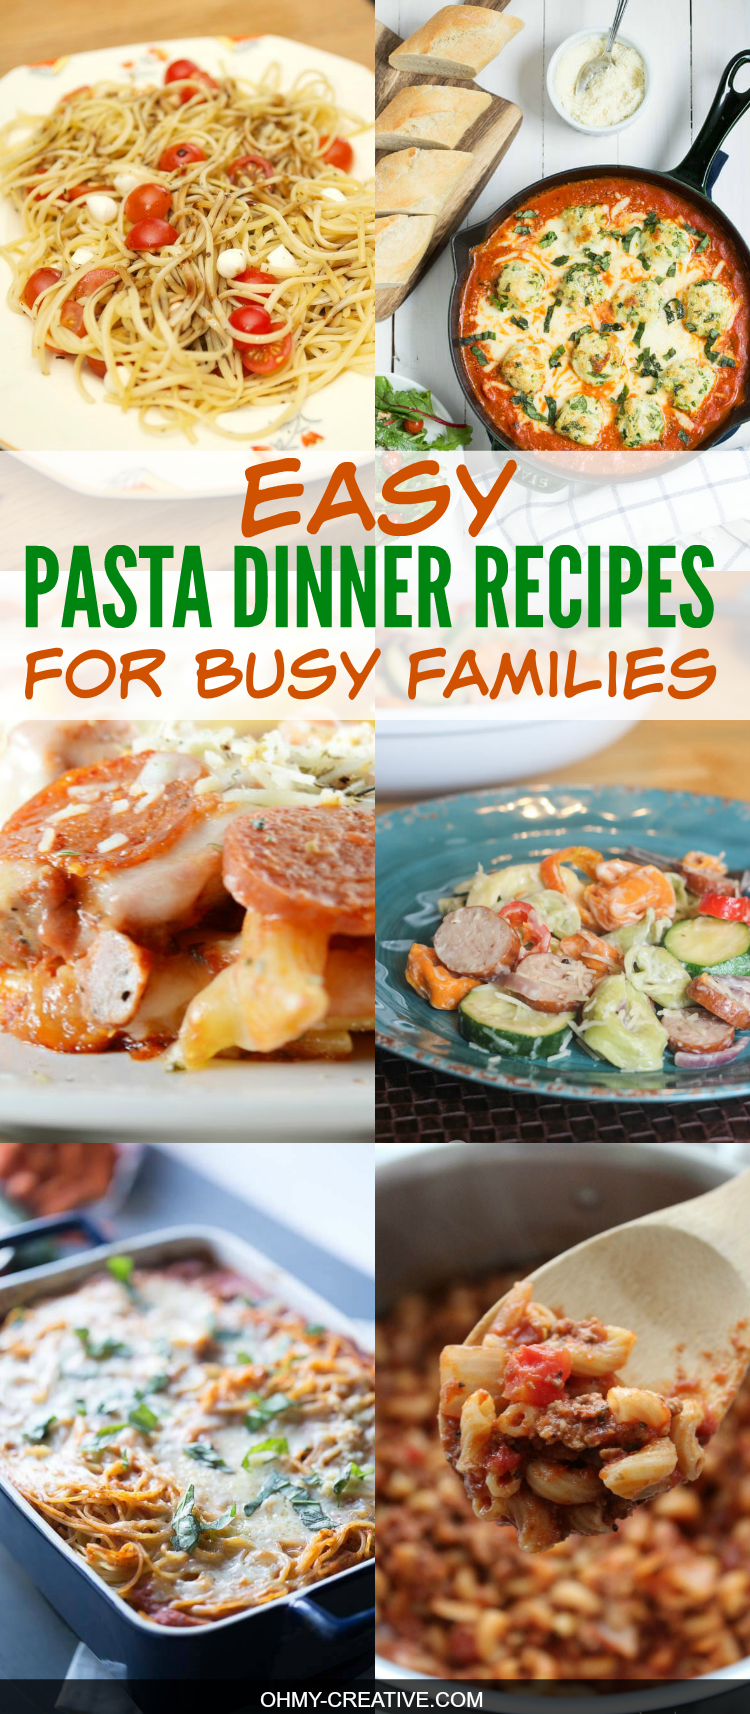 """""""What to make for dinner?"""" is the question of the day! Especially when life is crazy busy every day! That's why I love these Easy Pasta Dinner Recipes - a one pan easy family dinner - yummy too! OHMY-CREATIVE.COM"""